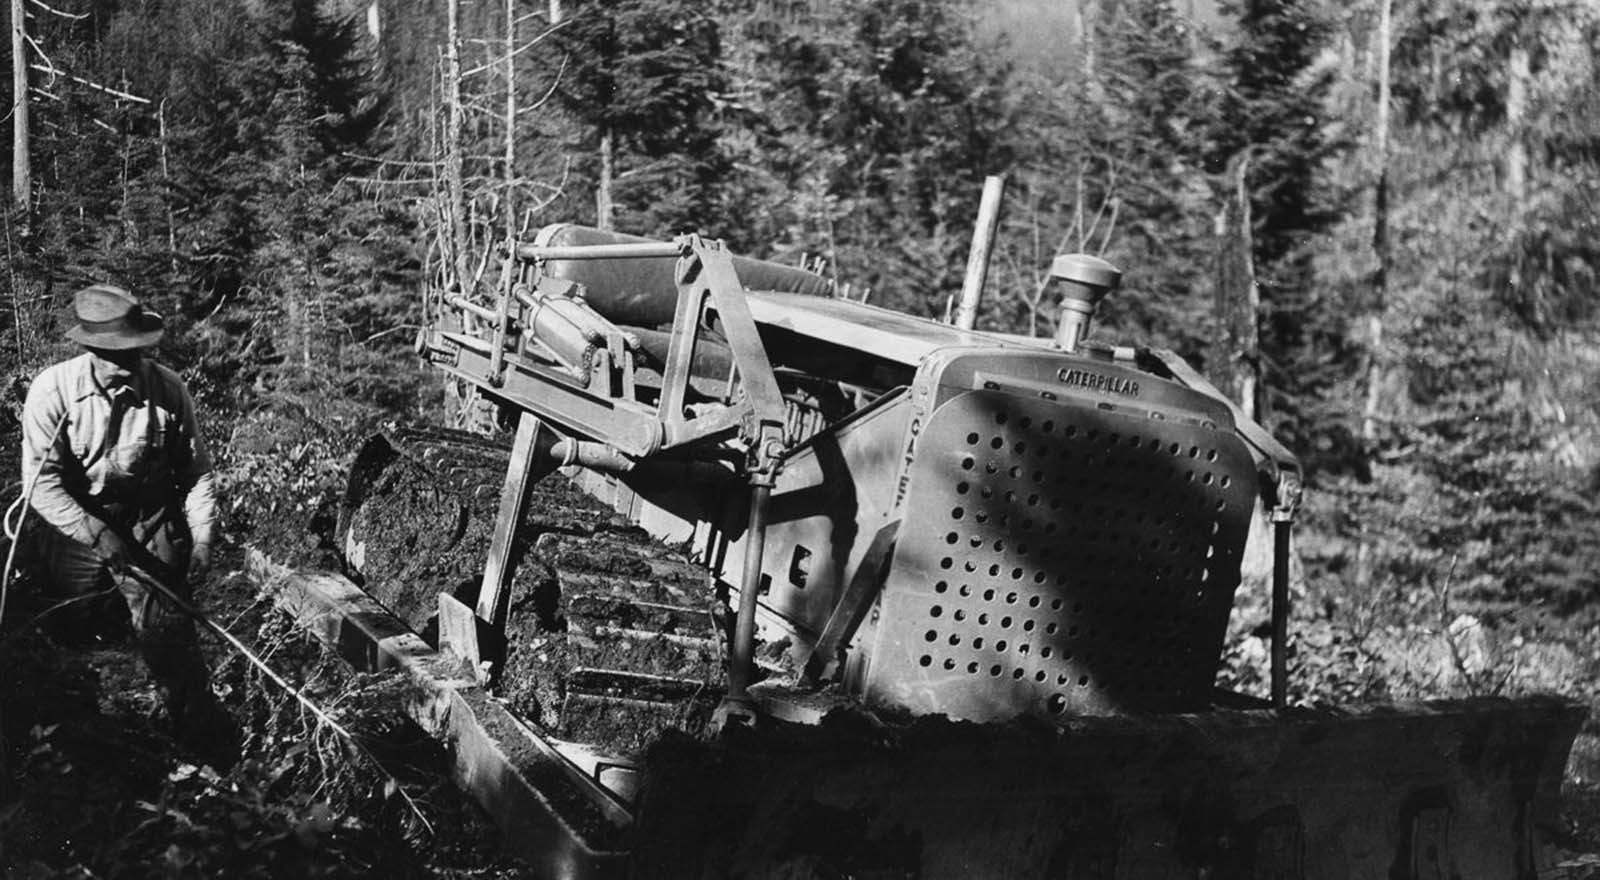 A logger uses a bulldozer to build a road through the forest. 1930.